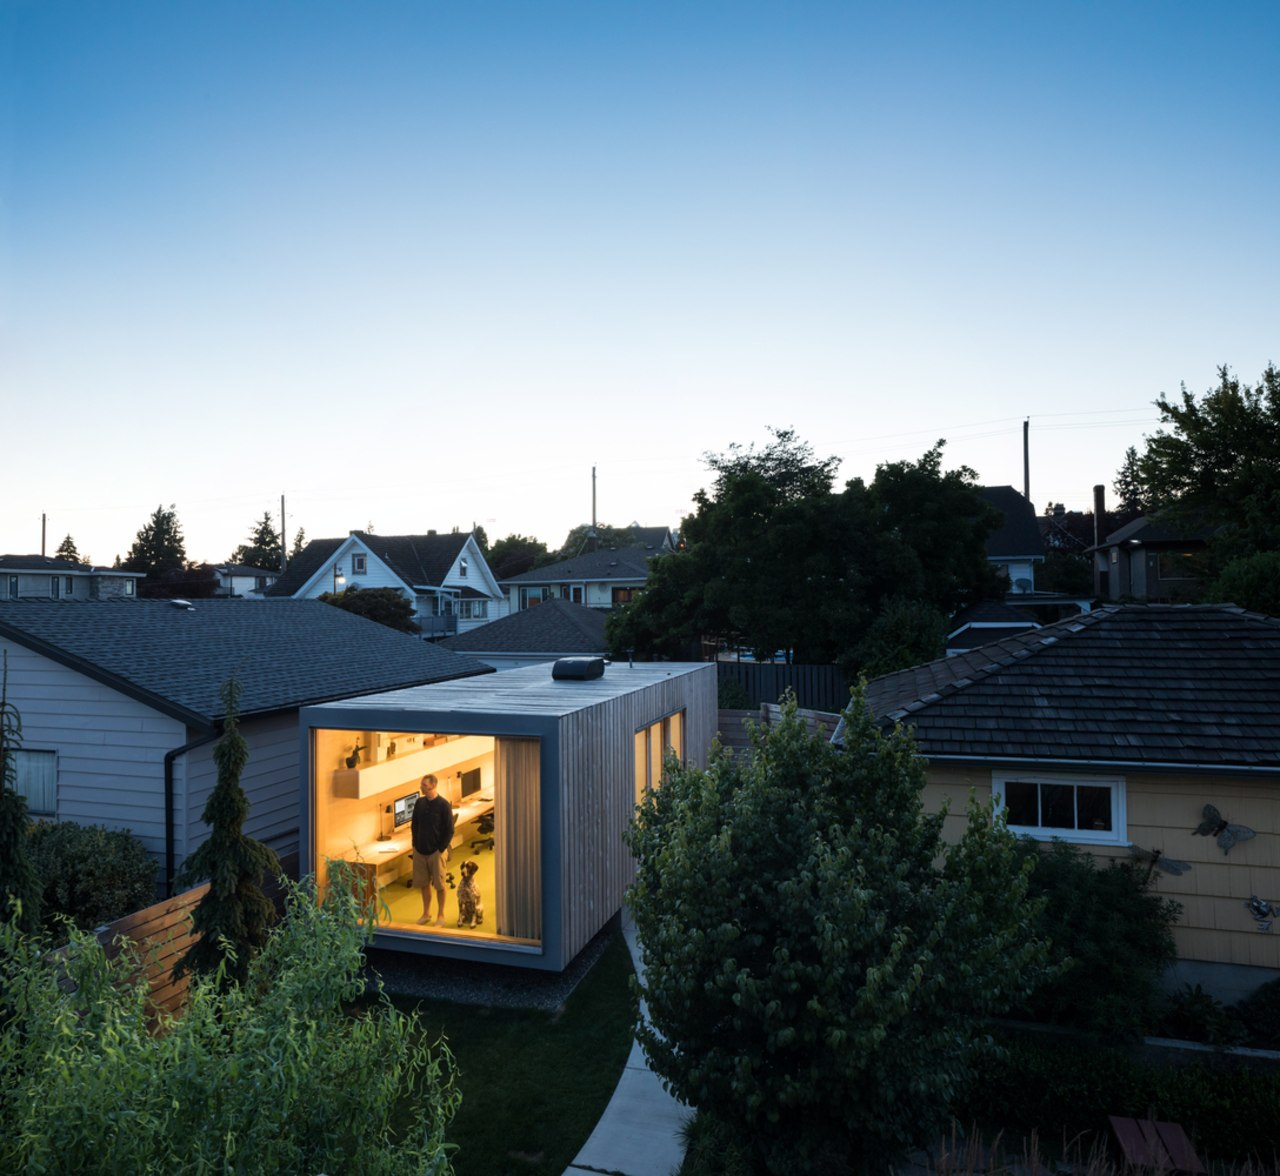 Architect in residence - architecture | cottage | architecture, cottage, estate, evening, facade, home, house, morning, neighbourhood, plant, property, real estate, residential area, roof, shed, sky, suburb, tree, black